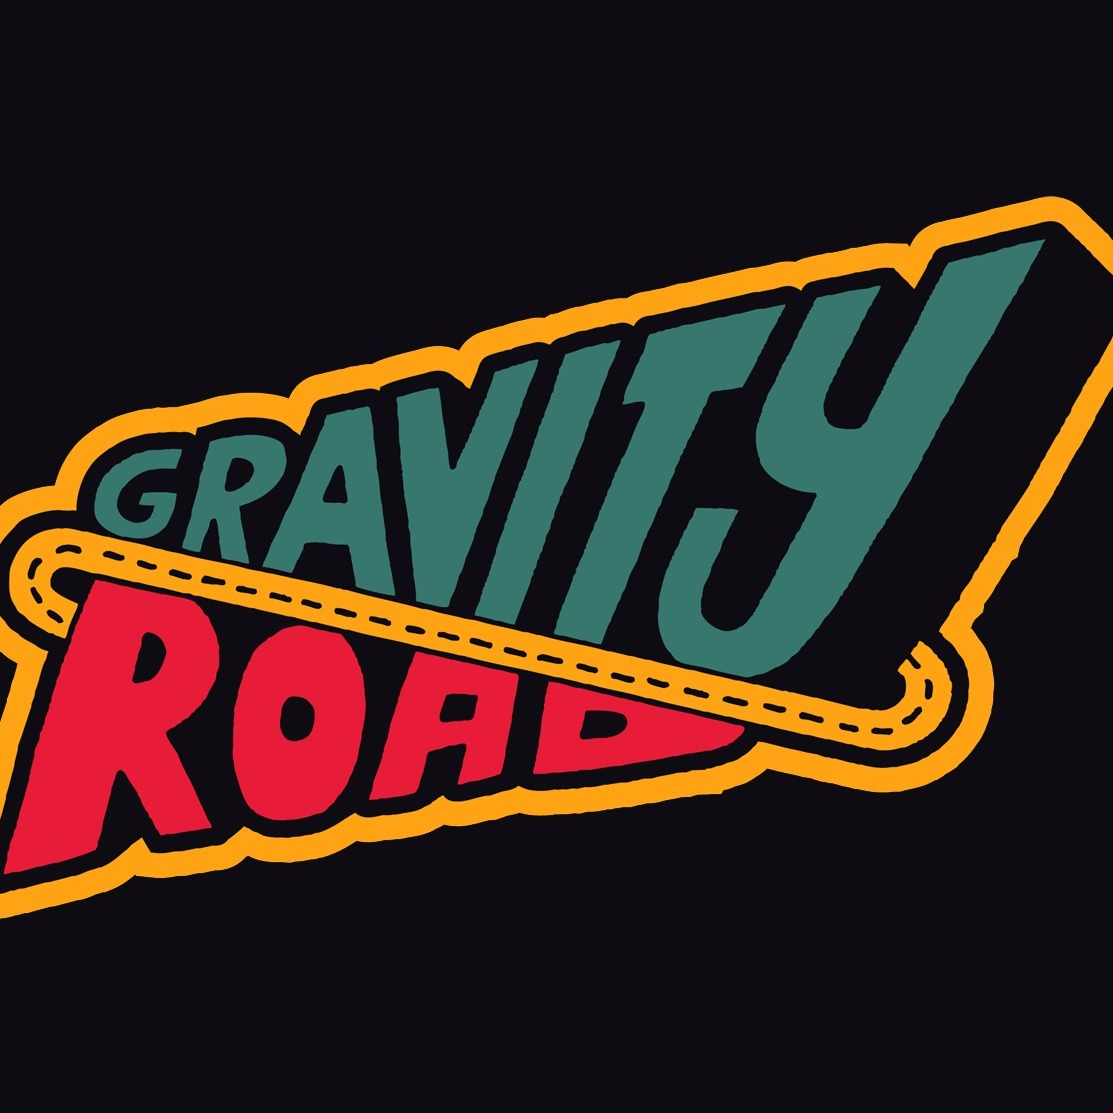 Gravity Road Logo